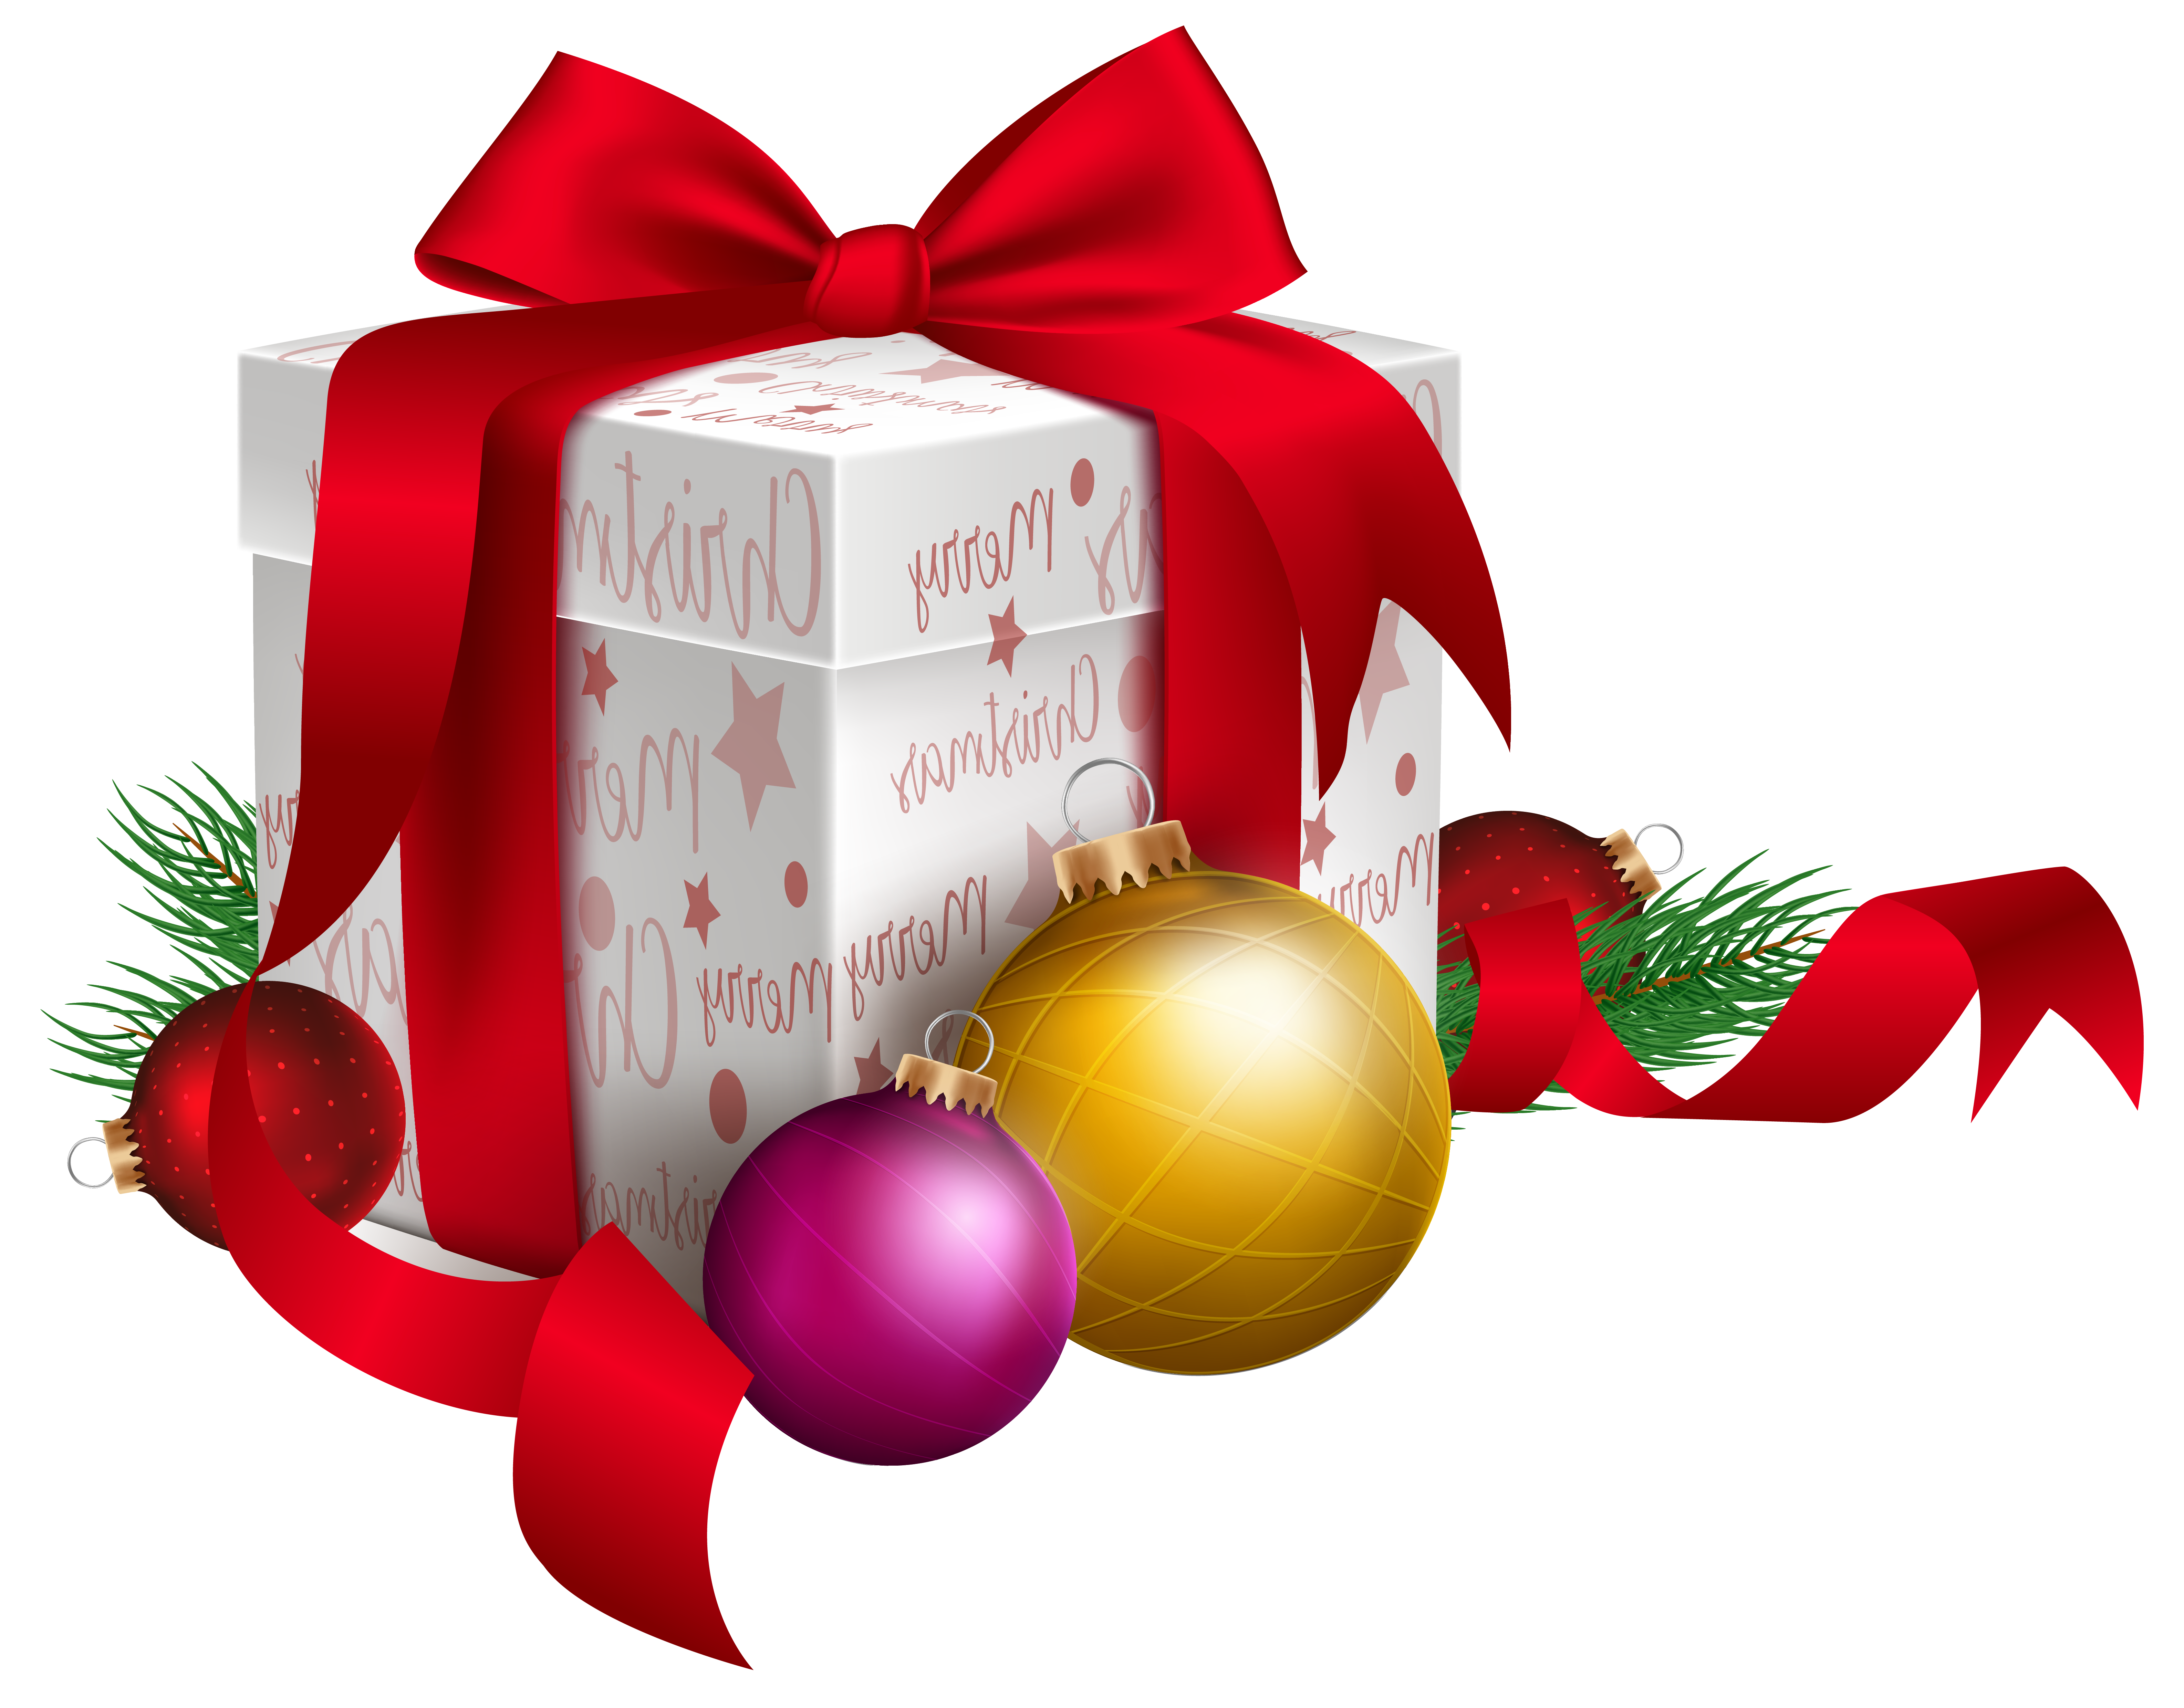 Christmas Gift And Ornaments Transparent Png Clip Art Image Gallery Yopriceville High Quality Images Christmas Stickers Christmas Gifts Christmas Clipart